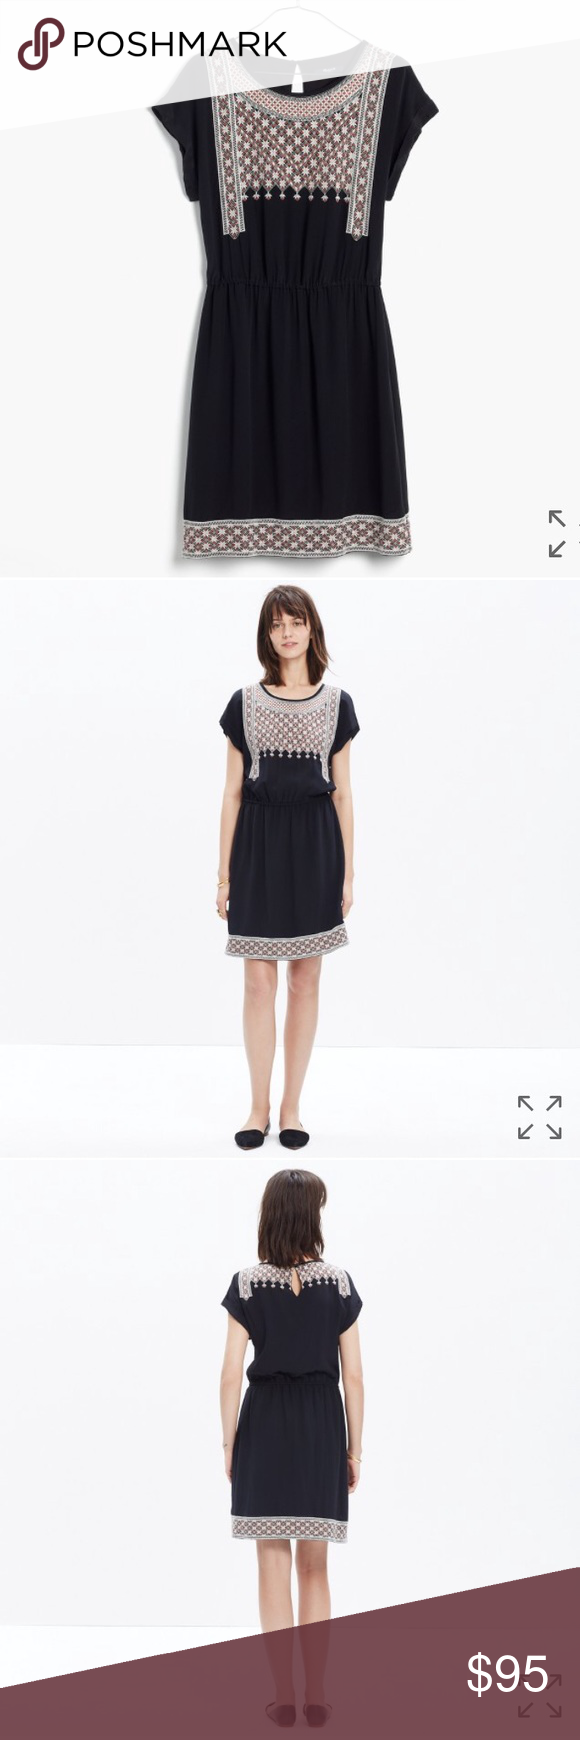 "NWT Madewell Silk Starflower Dress Brand new black silk dress with intricate embroidery. Elasticized waist for flattering fit. Runs a little big- would fit sizes 4-6. Bust is 38"" and length is 36"". Madewell Dresses"